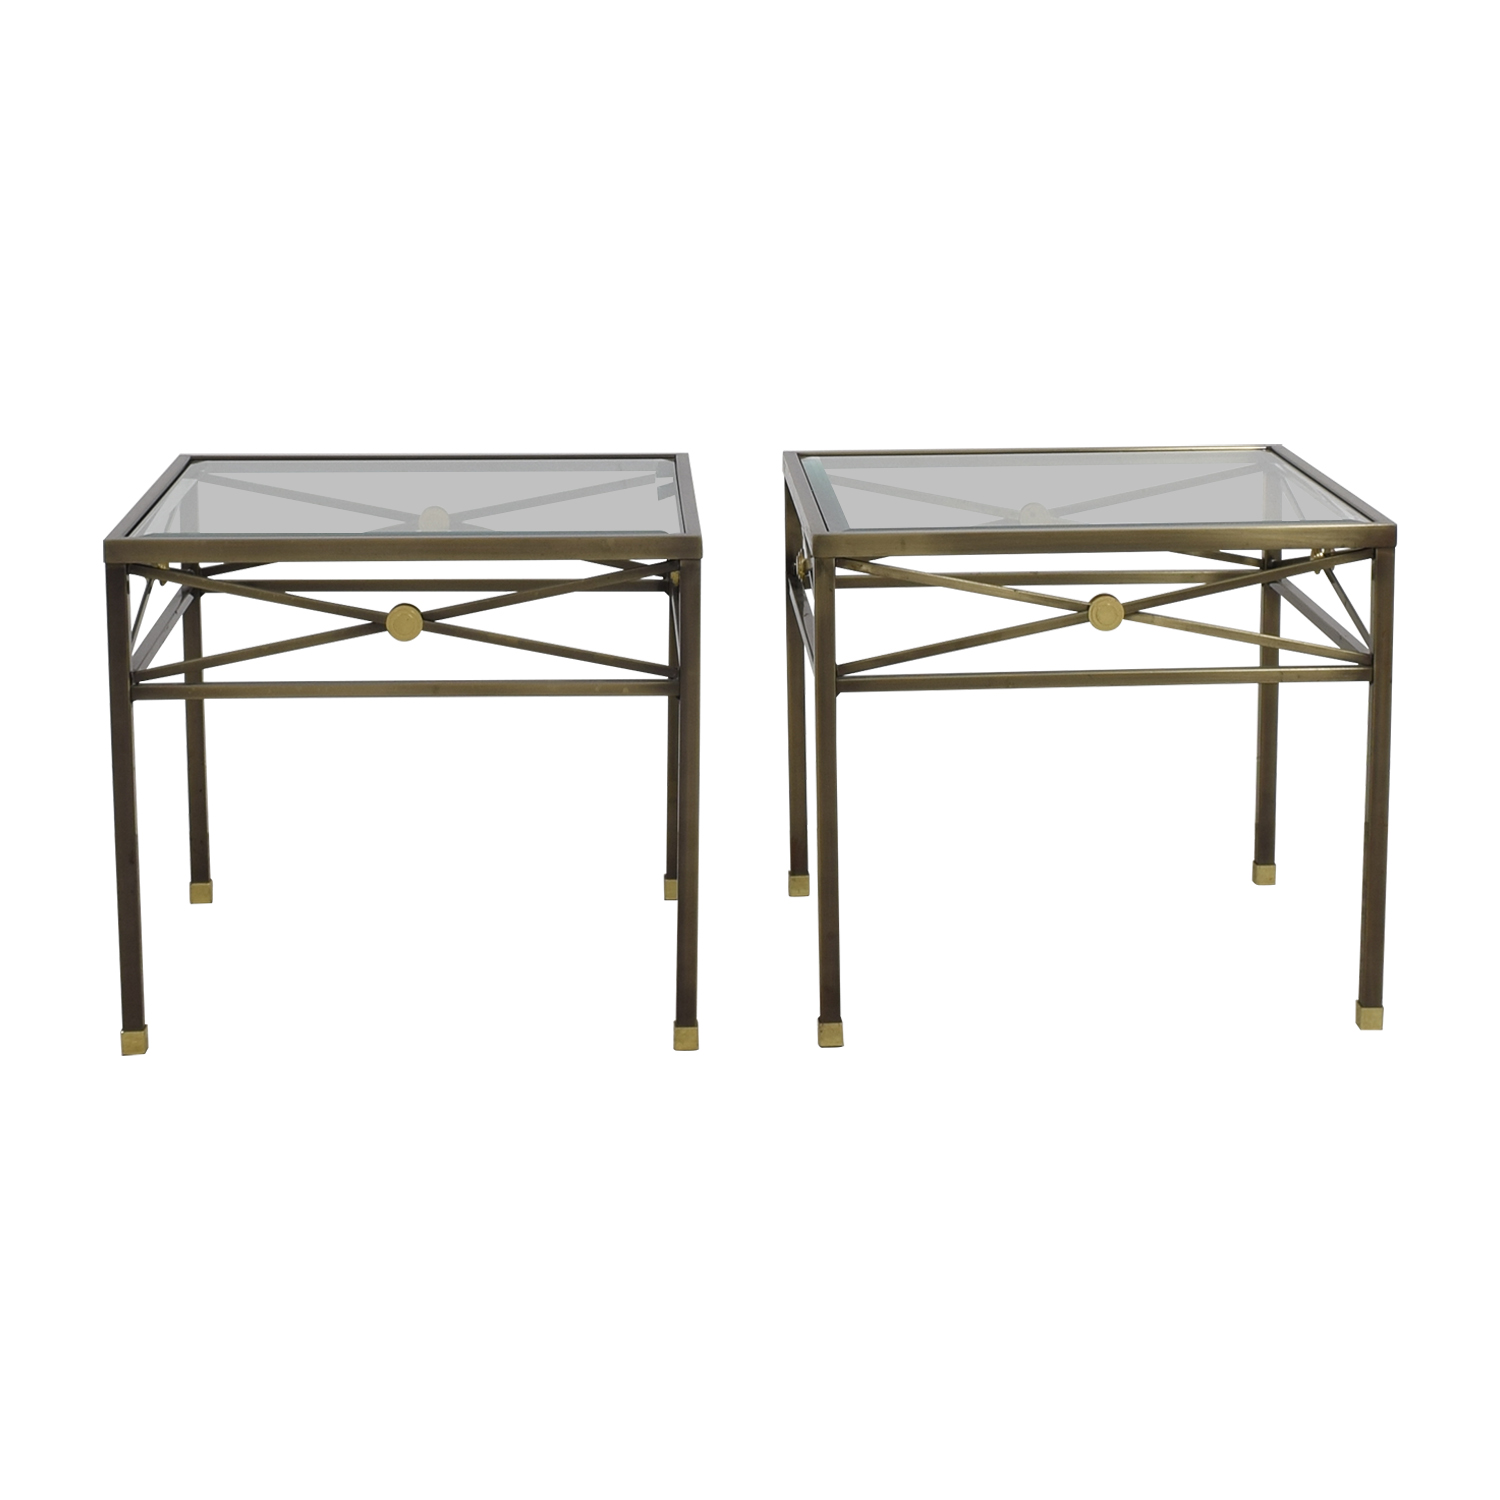 Macy's Glass and Brass Side Tables Macy's